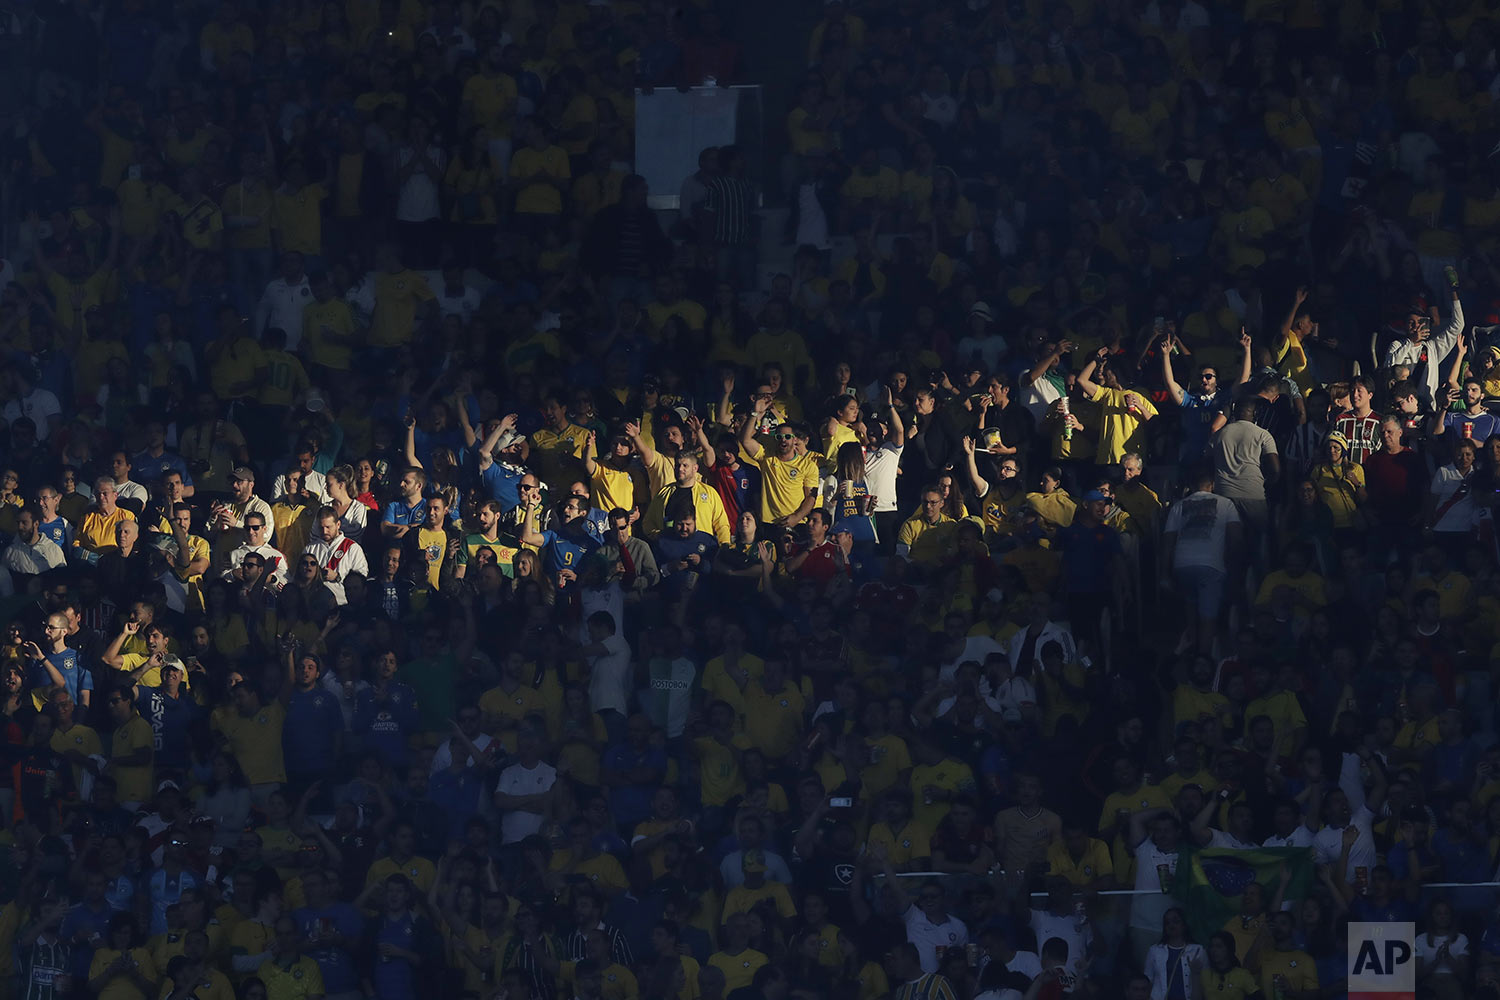 Brazil's fans cheer prior to the final match of the Copa America against Peru at Maracana stadium in Rio de Janeiro, Brazil, Sunday, July 7, 2019. (AP Photo/Andre Penner)